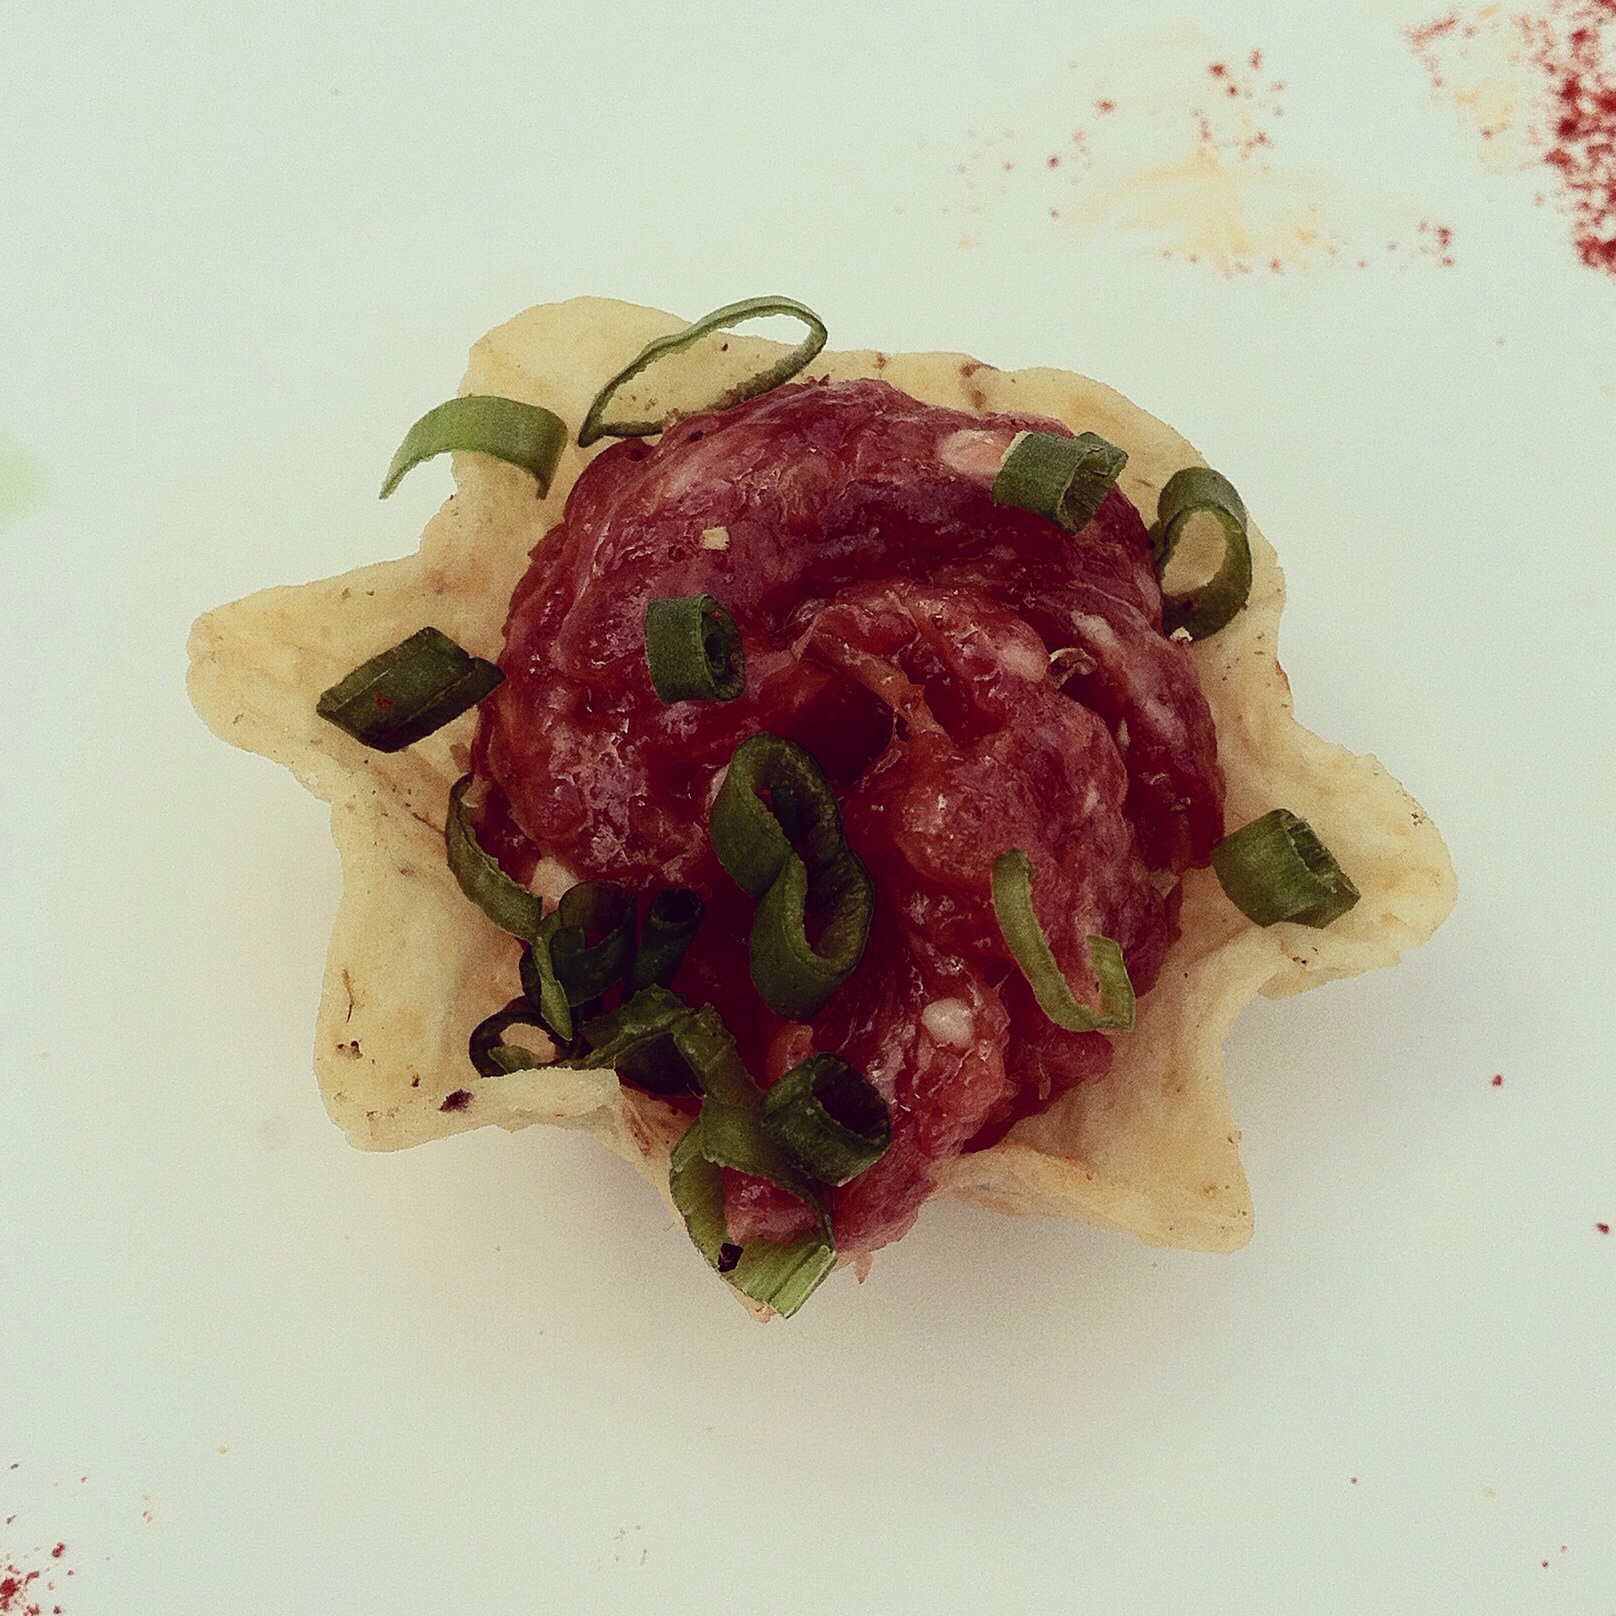 Lamb tartare.  Photo by Shana Sokol, Shana Speaks Wine.